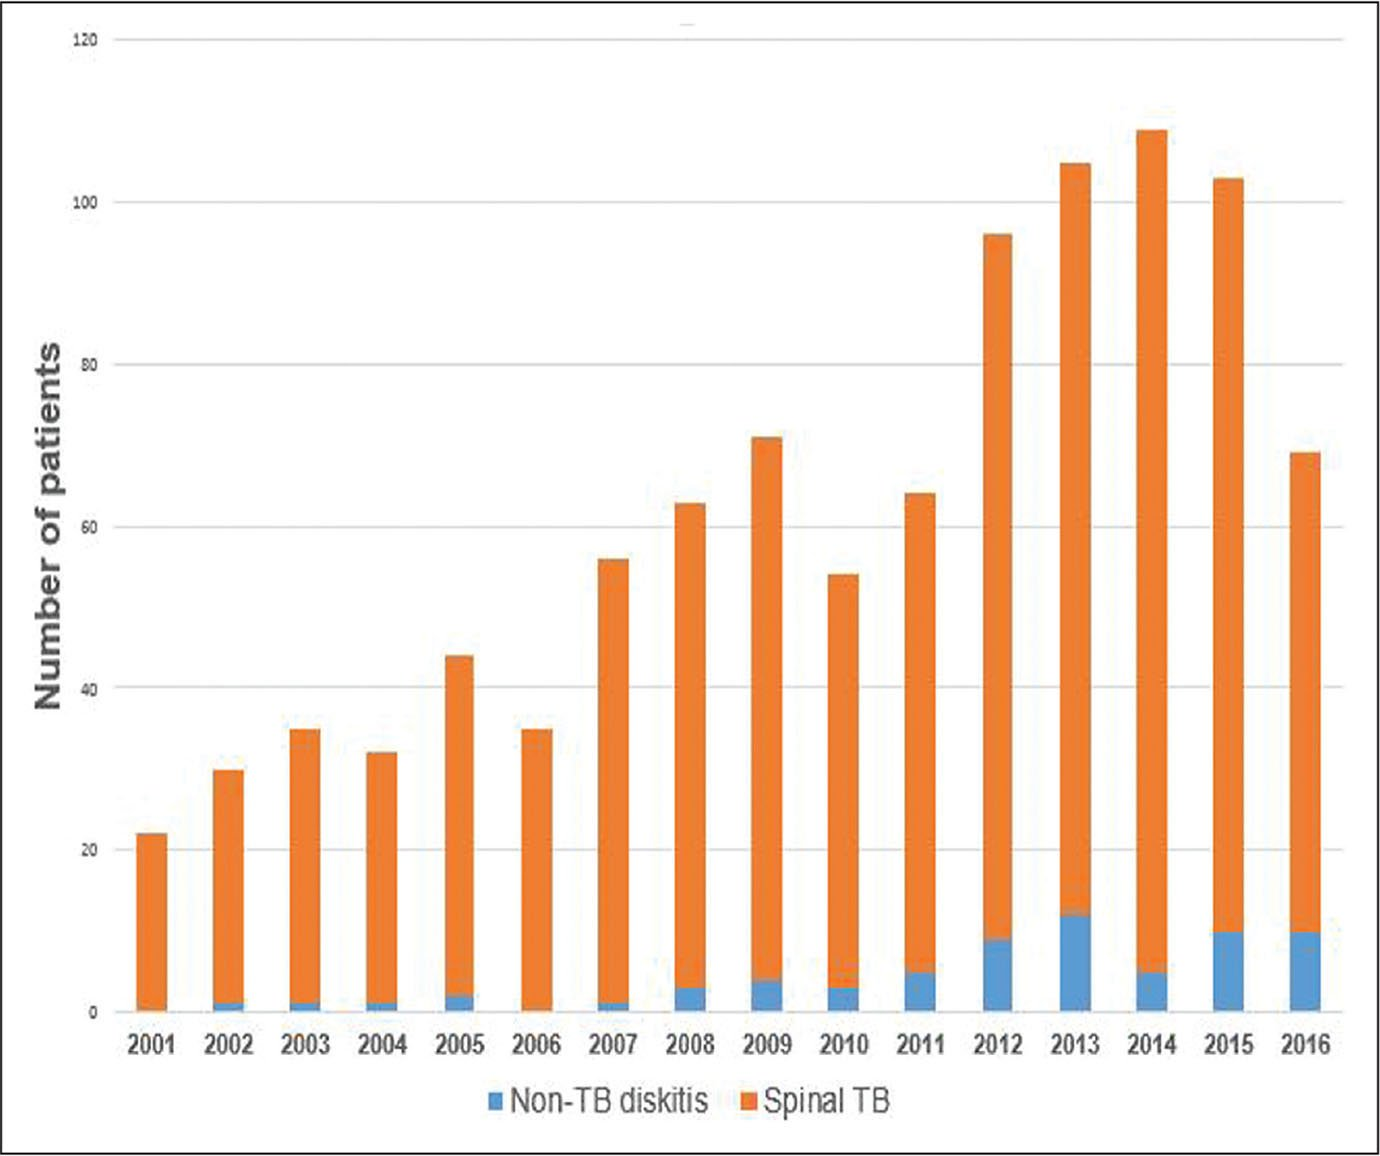 Proportional graph of the annual number of cases of spinal tuberculosis (TB)/non-TB diskitis between 2001 and 2016.